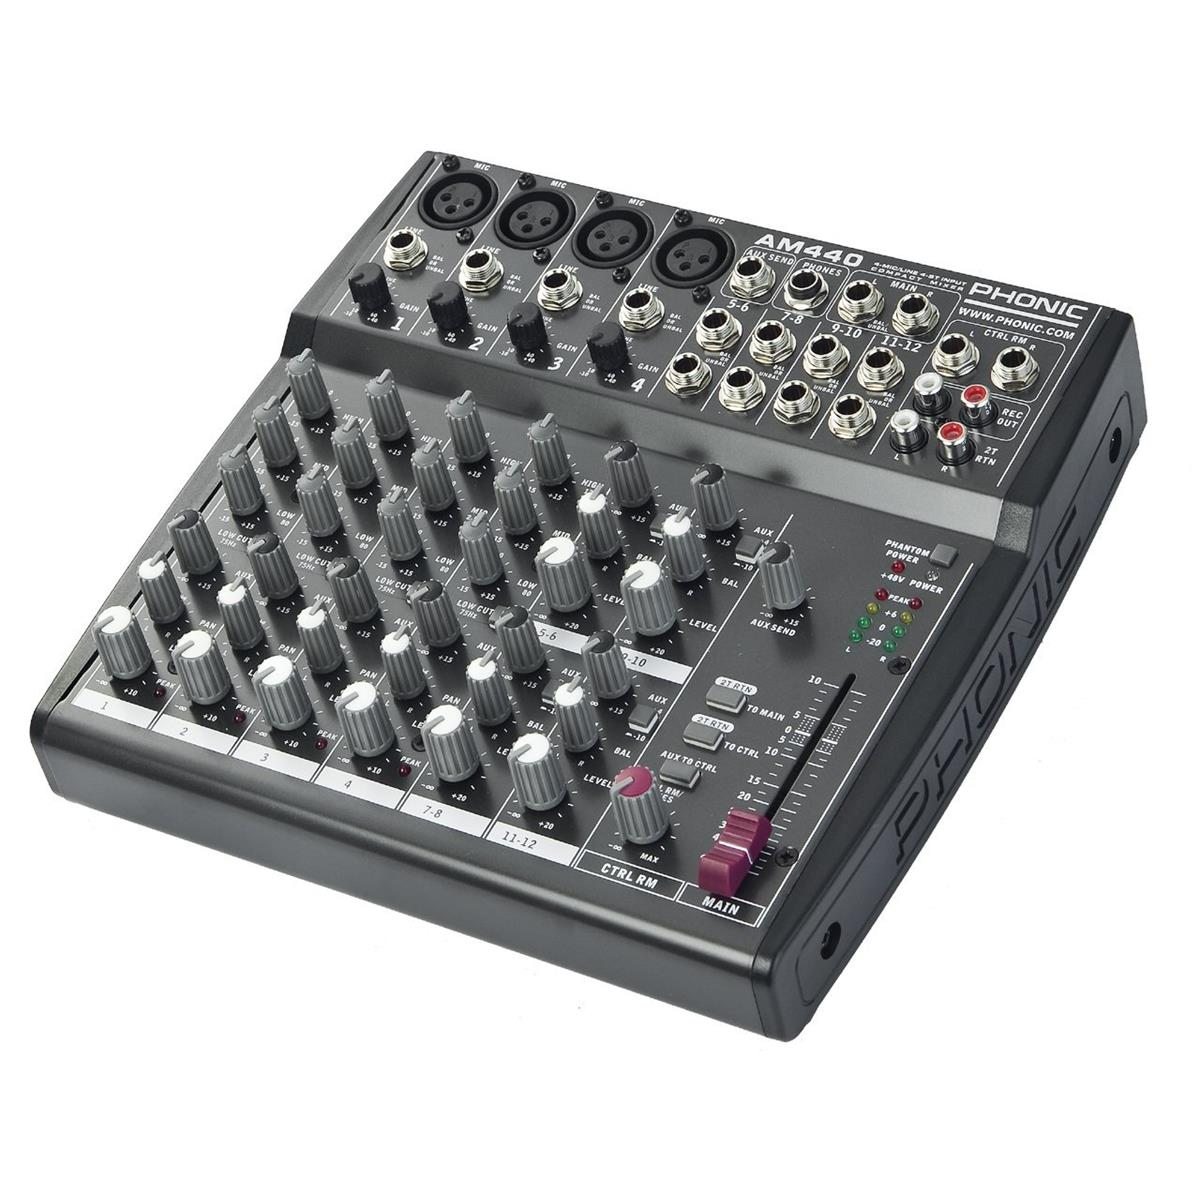 PHONIC-AM440-MIXER-sku-548